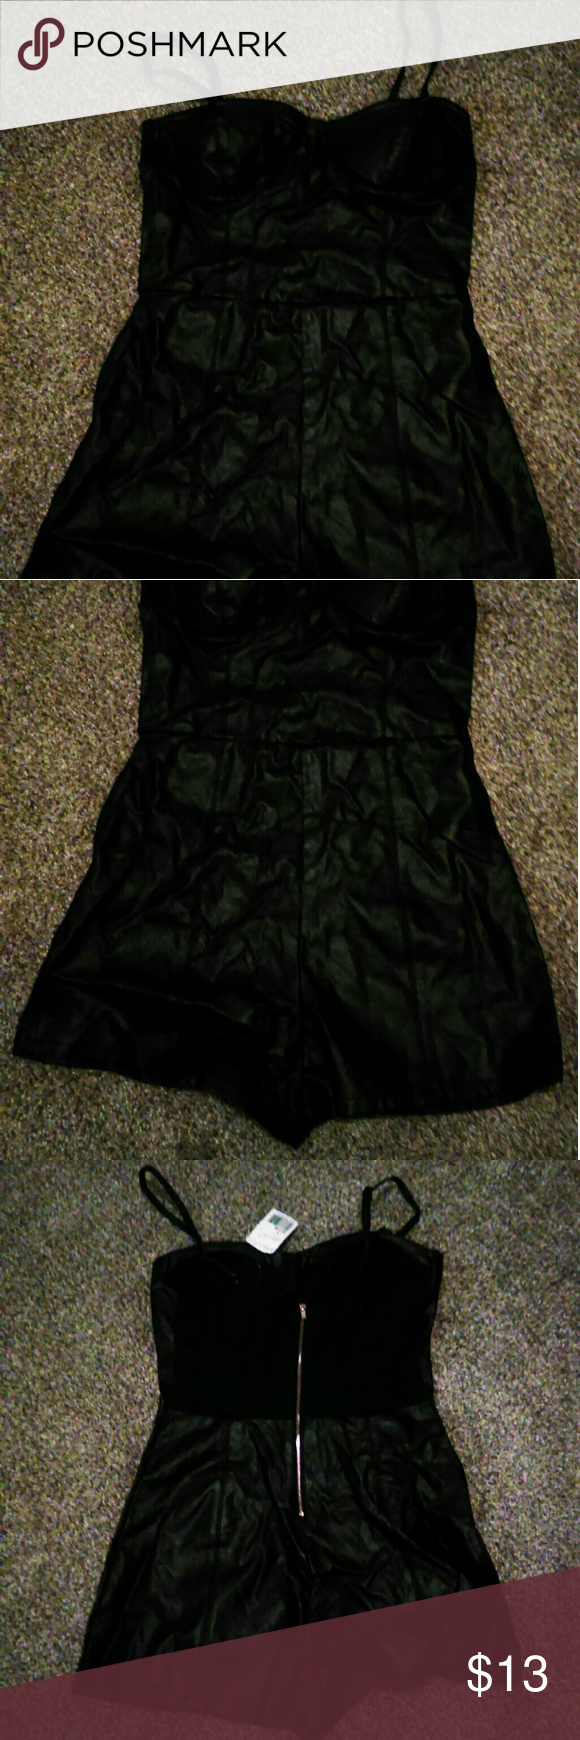 55c0f510b69 NWT Forever 21 Jumper Tube NWT Forever 21 Leather Jumper Tube. Size Small. Forever  21 Pants Jumpsuits   Rompers